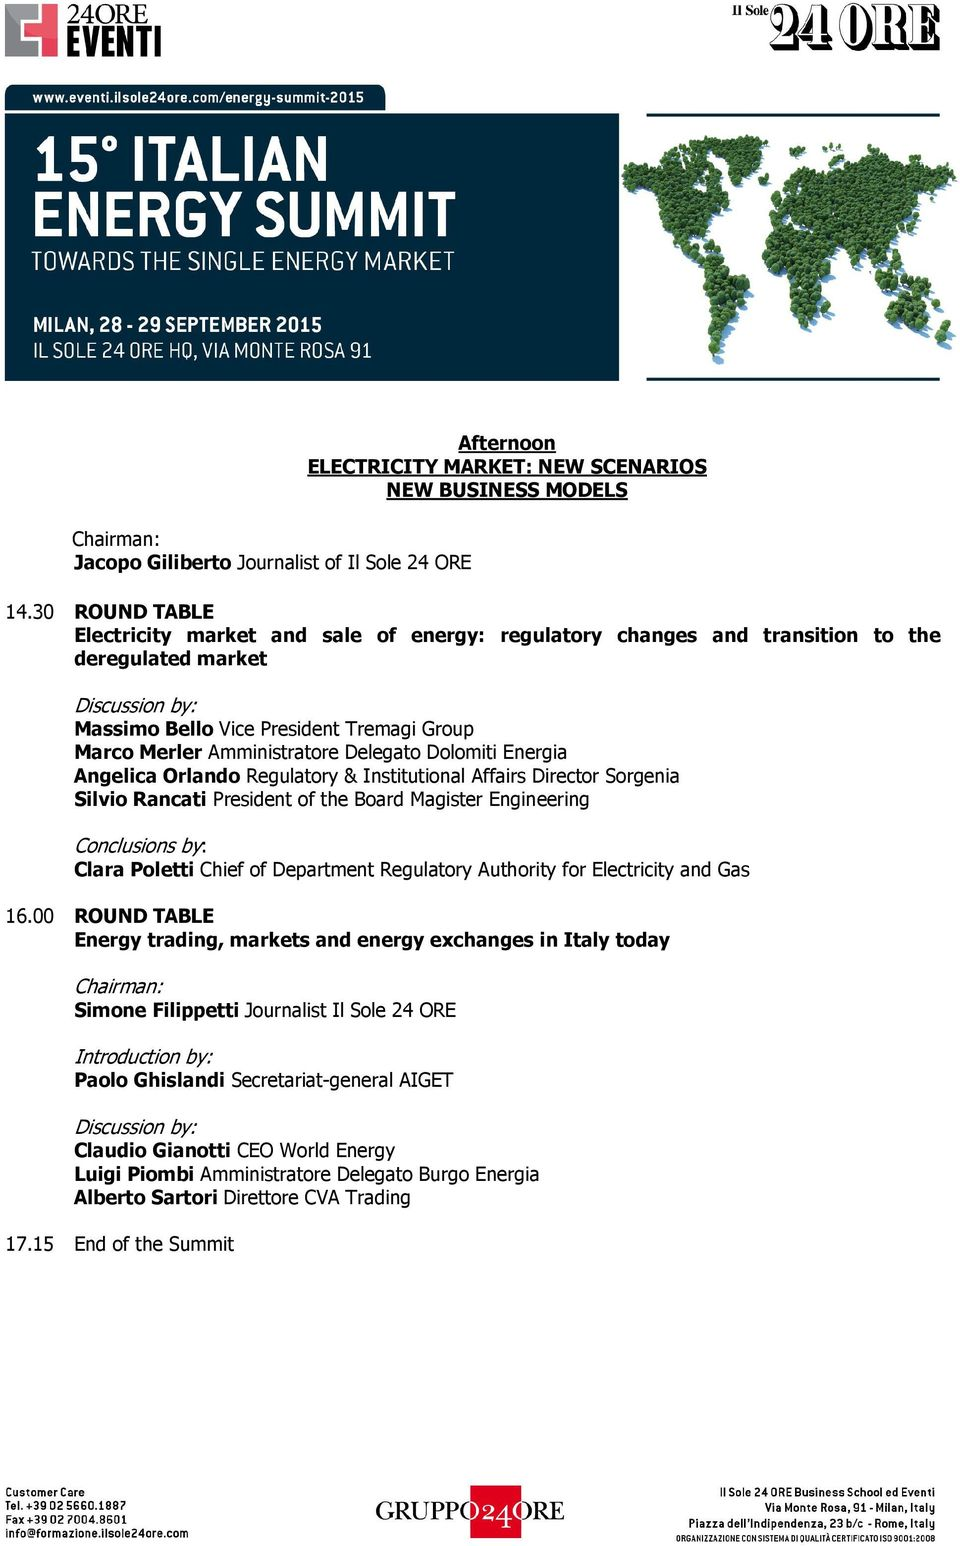 Dolomiti Energia Angelica Orlando Regulatory & Institutional Affairs Director Sorgenia Silvio Rancati President of the Board Magister Engineering Conclusions by: Clara Poletti Chief of Department